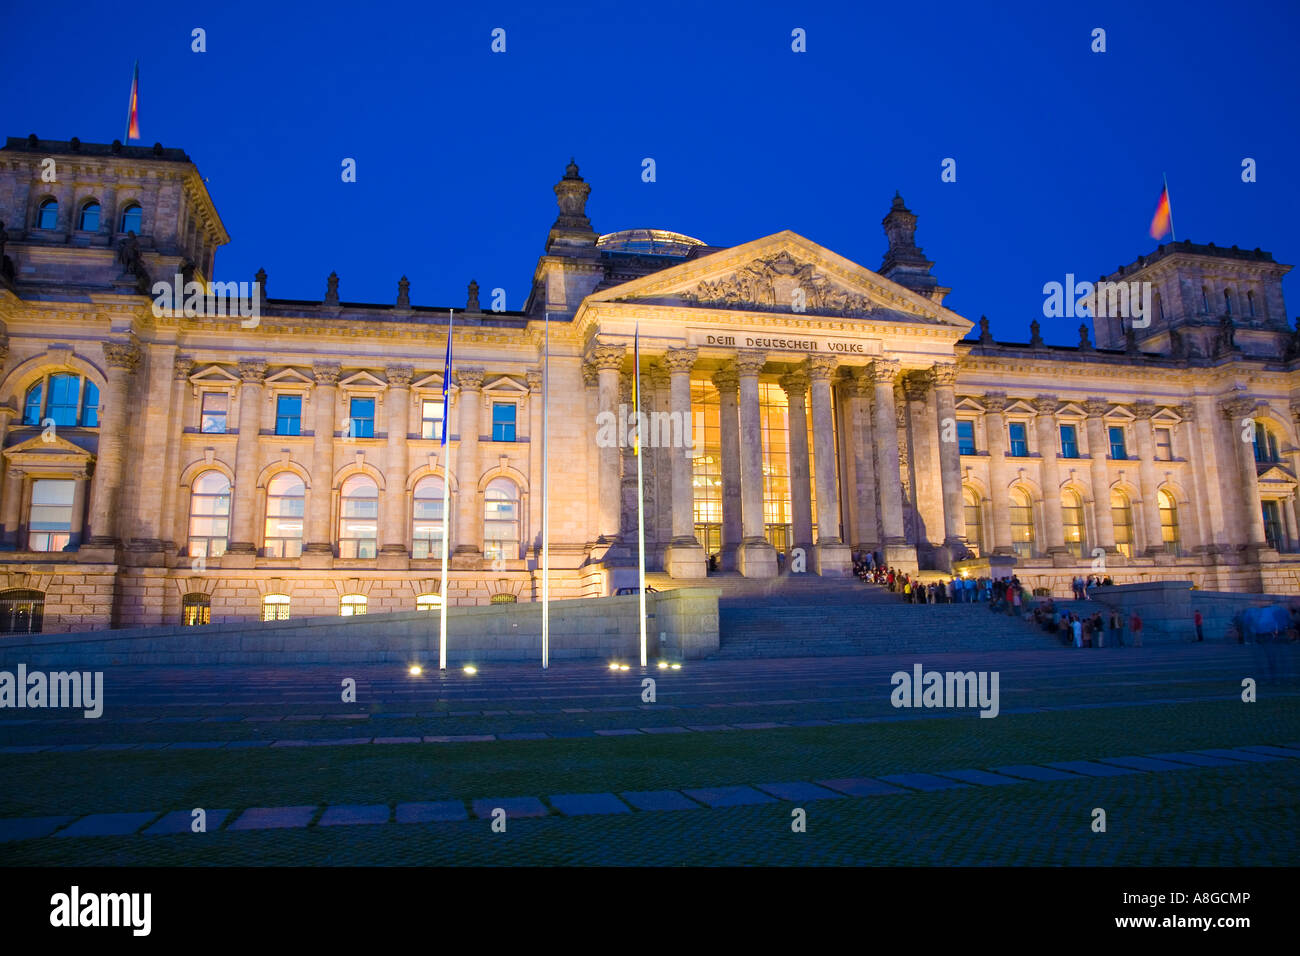 Parliament berlin germany europe european Stock Photo